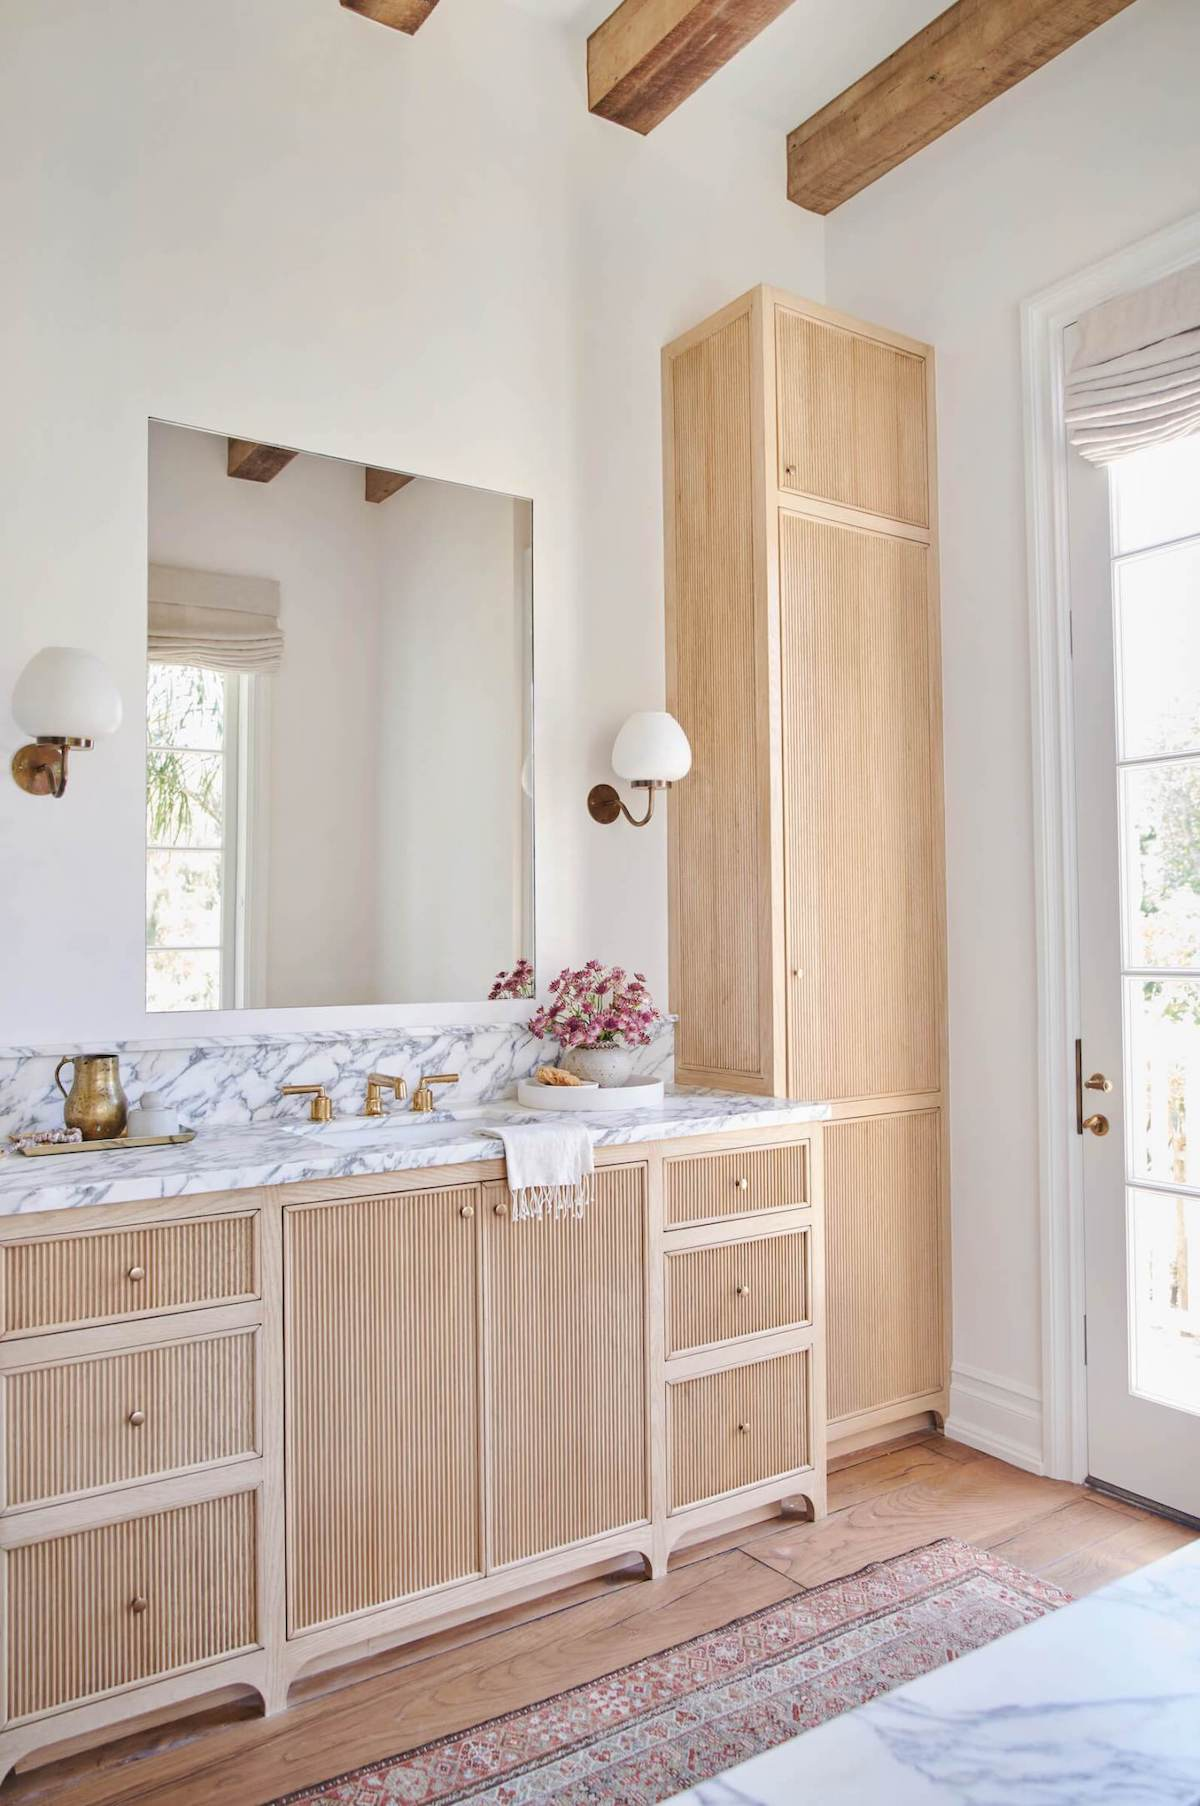 5 Hot Trends With Wood